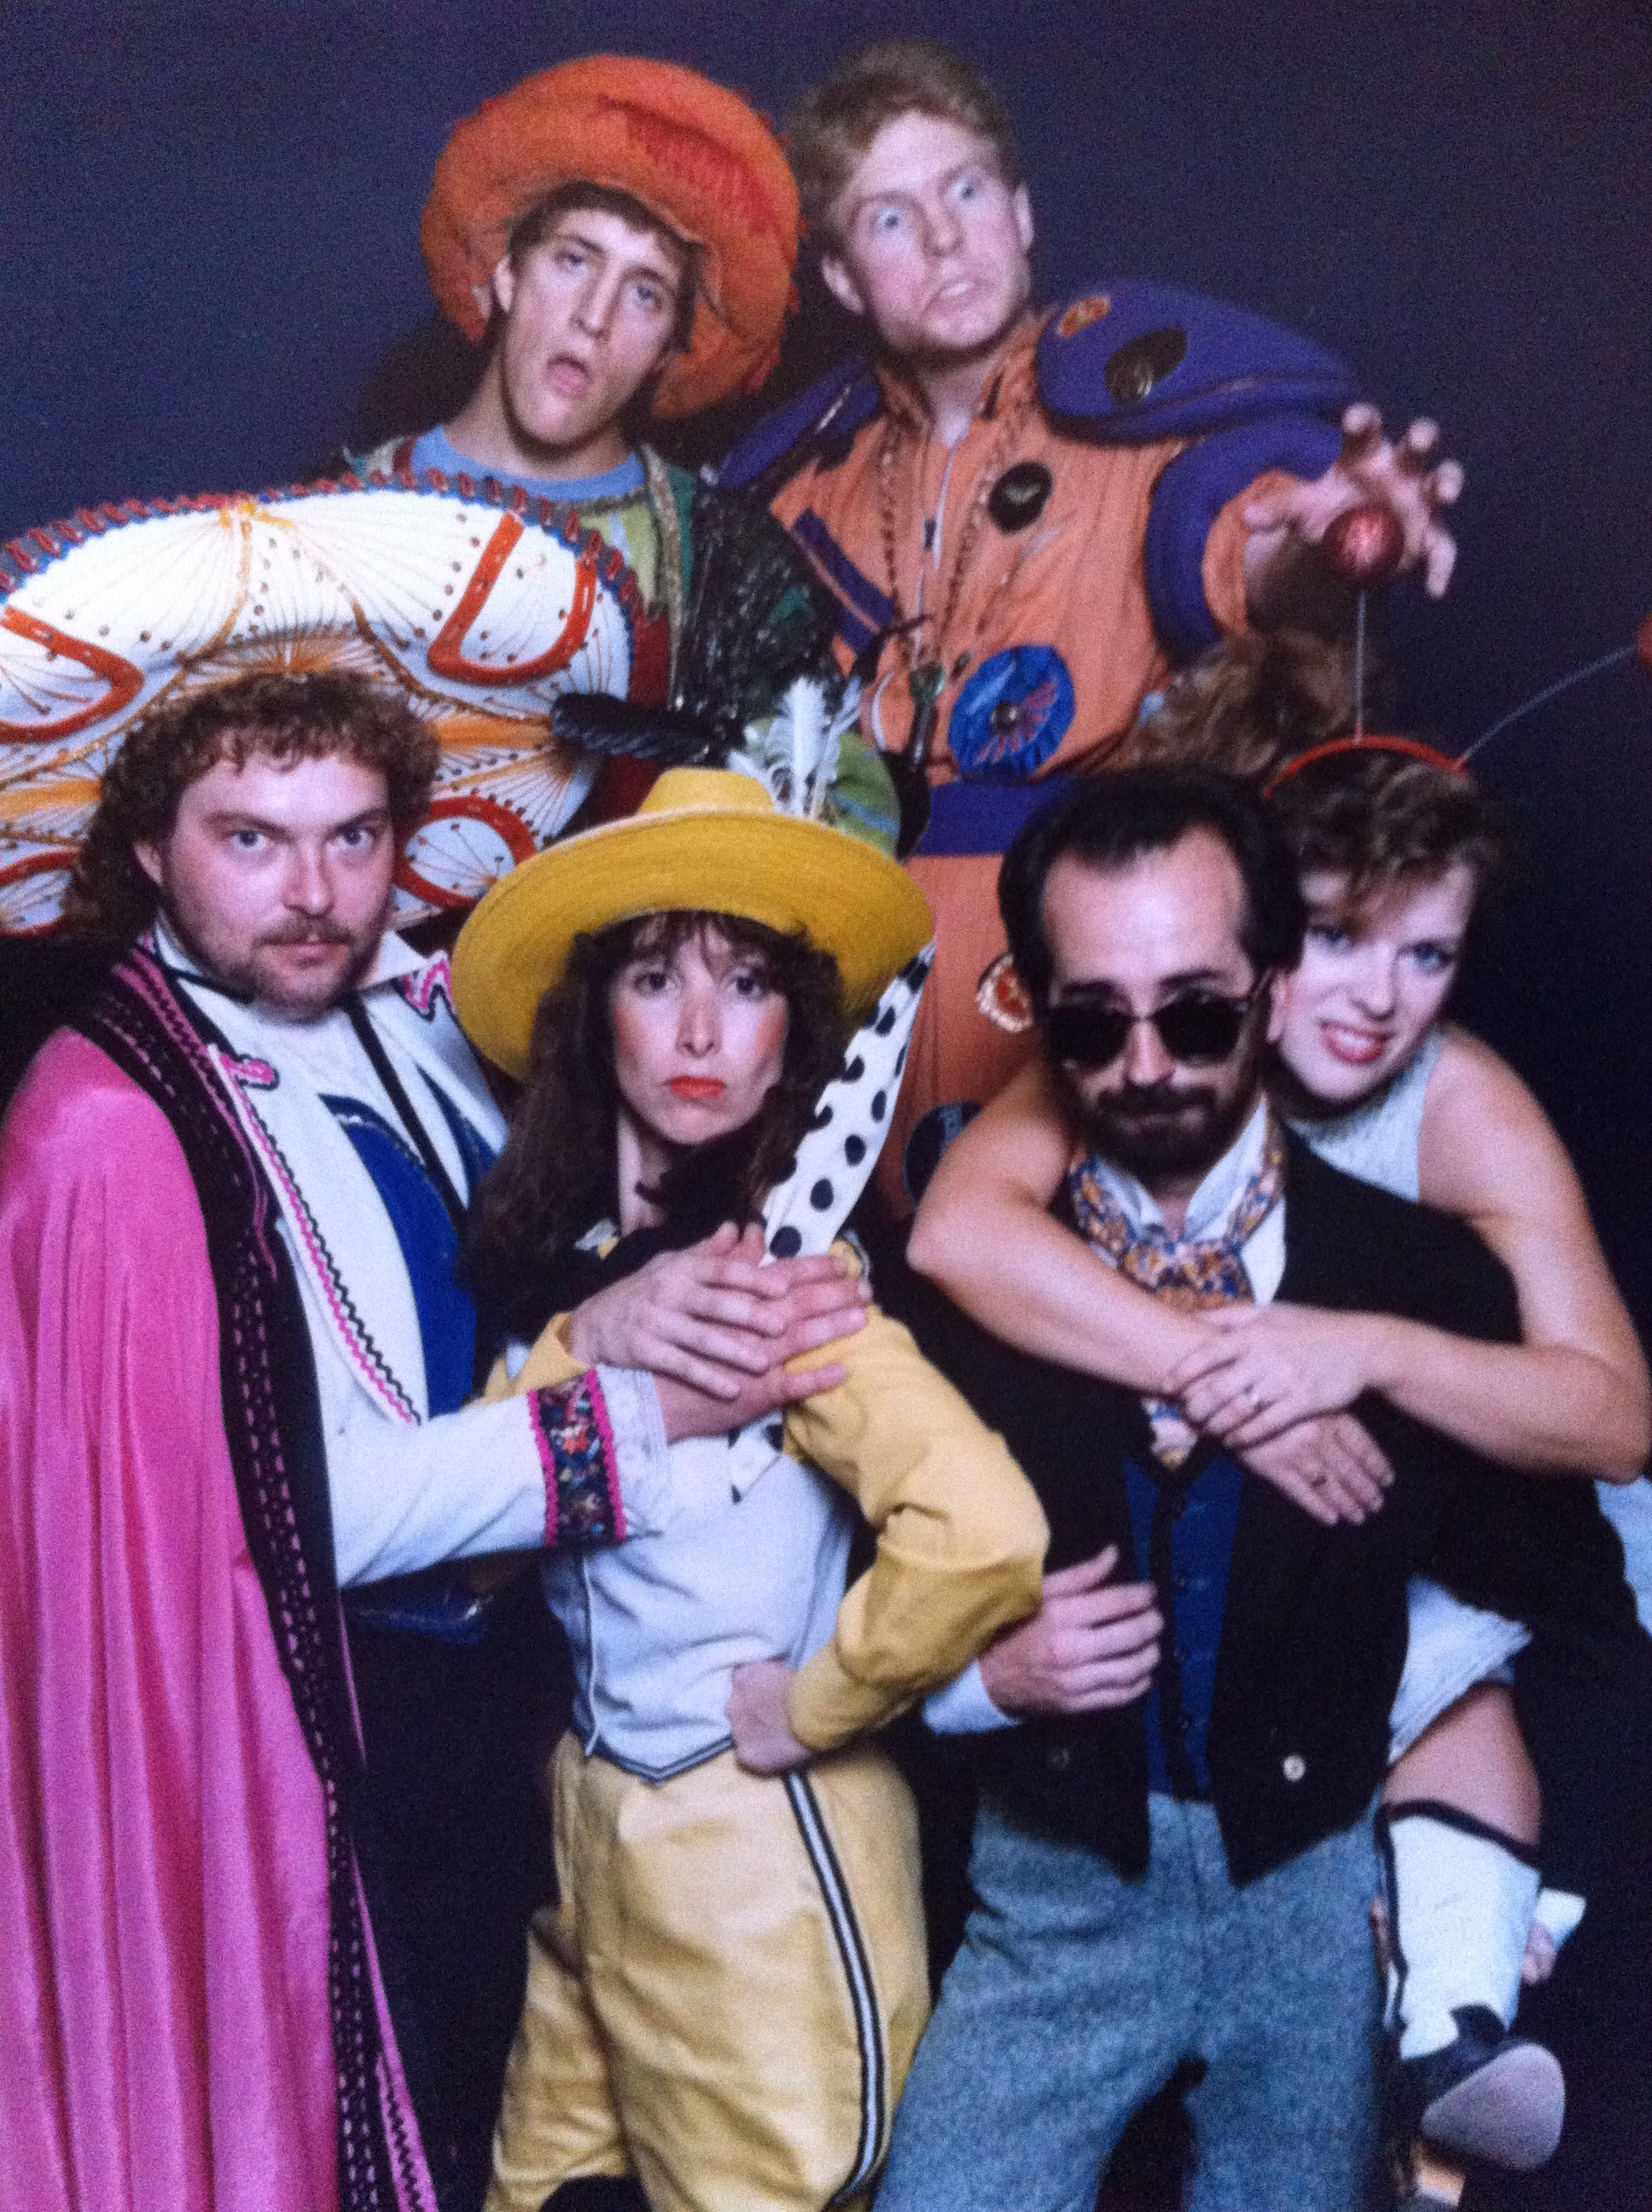 "Susan Sindelar (in yellow) and company in Childsplay's ""Montana Molly and the Peppermint Kid."" (Photograph courtesy of Susan Sindelar.) Childsplay. Early 1990s. ""Montana Molly & the Peppermint Kid."" Front Row: Scott Pegg, Susan Sindelar, Jon Gentry, Debra K. Stevens. Back Row: Unidentified. (Photograph courtesy of Susan Sindelar.)"